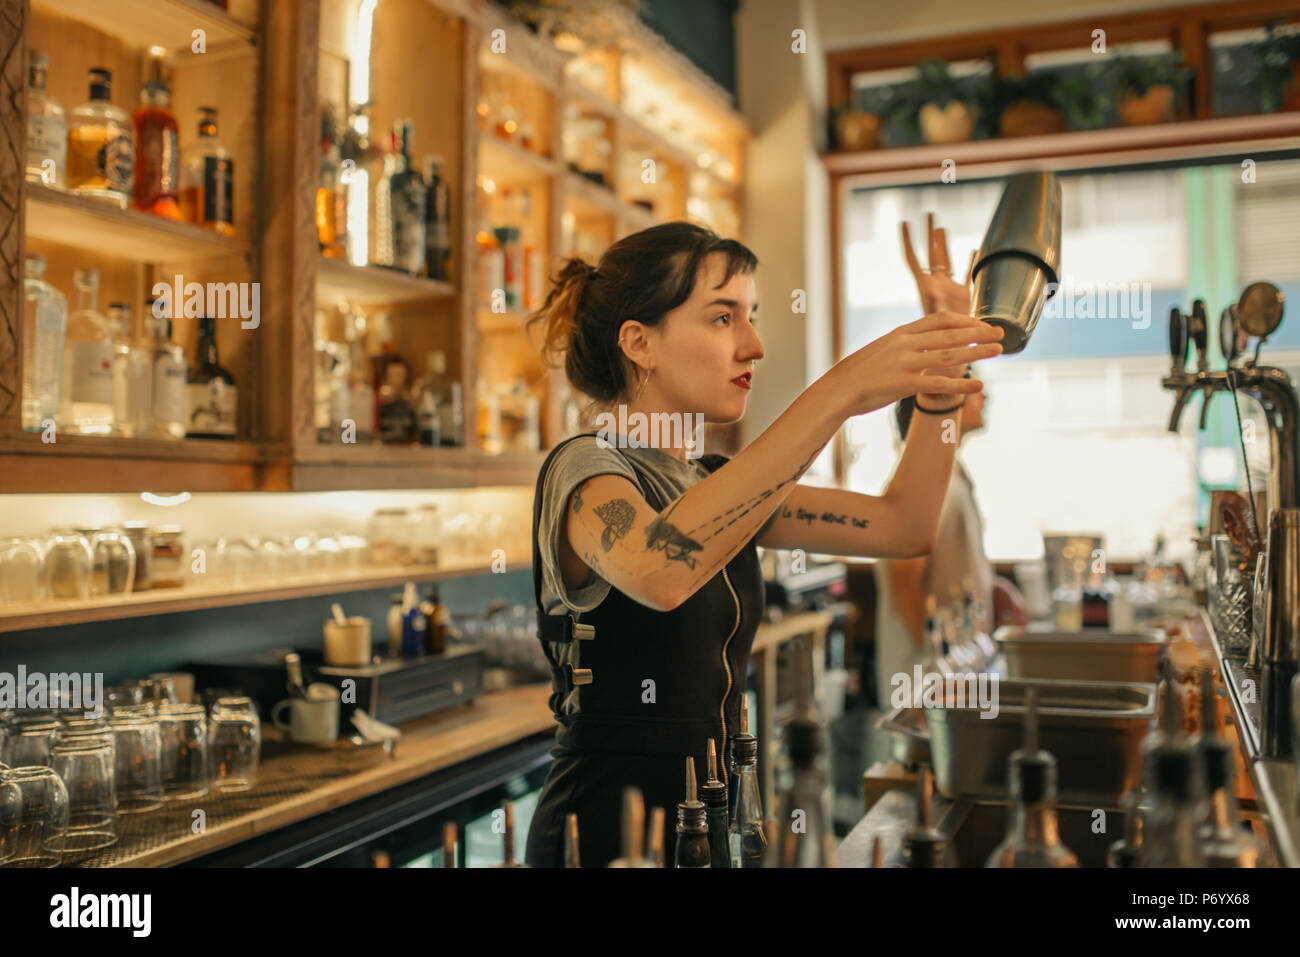 Young female bartender mixing cocktails behind a bar counter - Stock Image